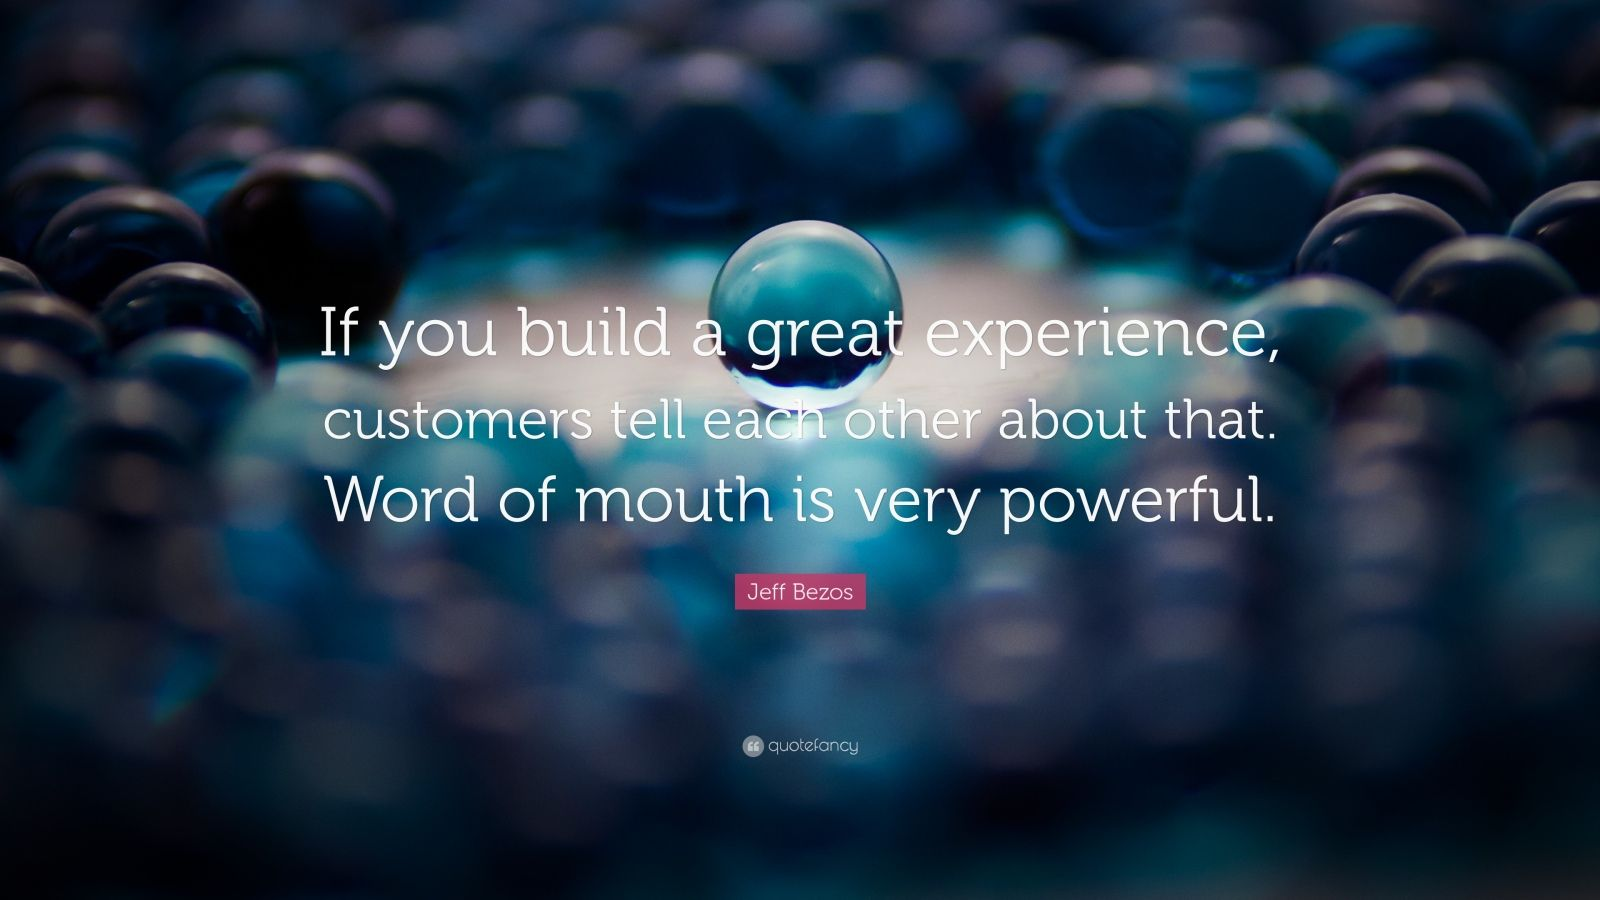 """Jeff Bezos Quote: """"If you build a great experience, customers tell each other about that. Word of mouth is very powerful."""""""